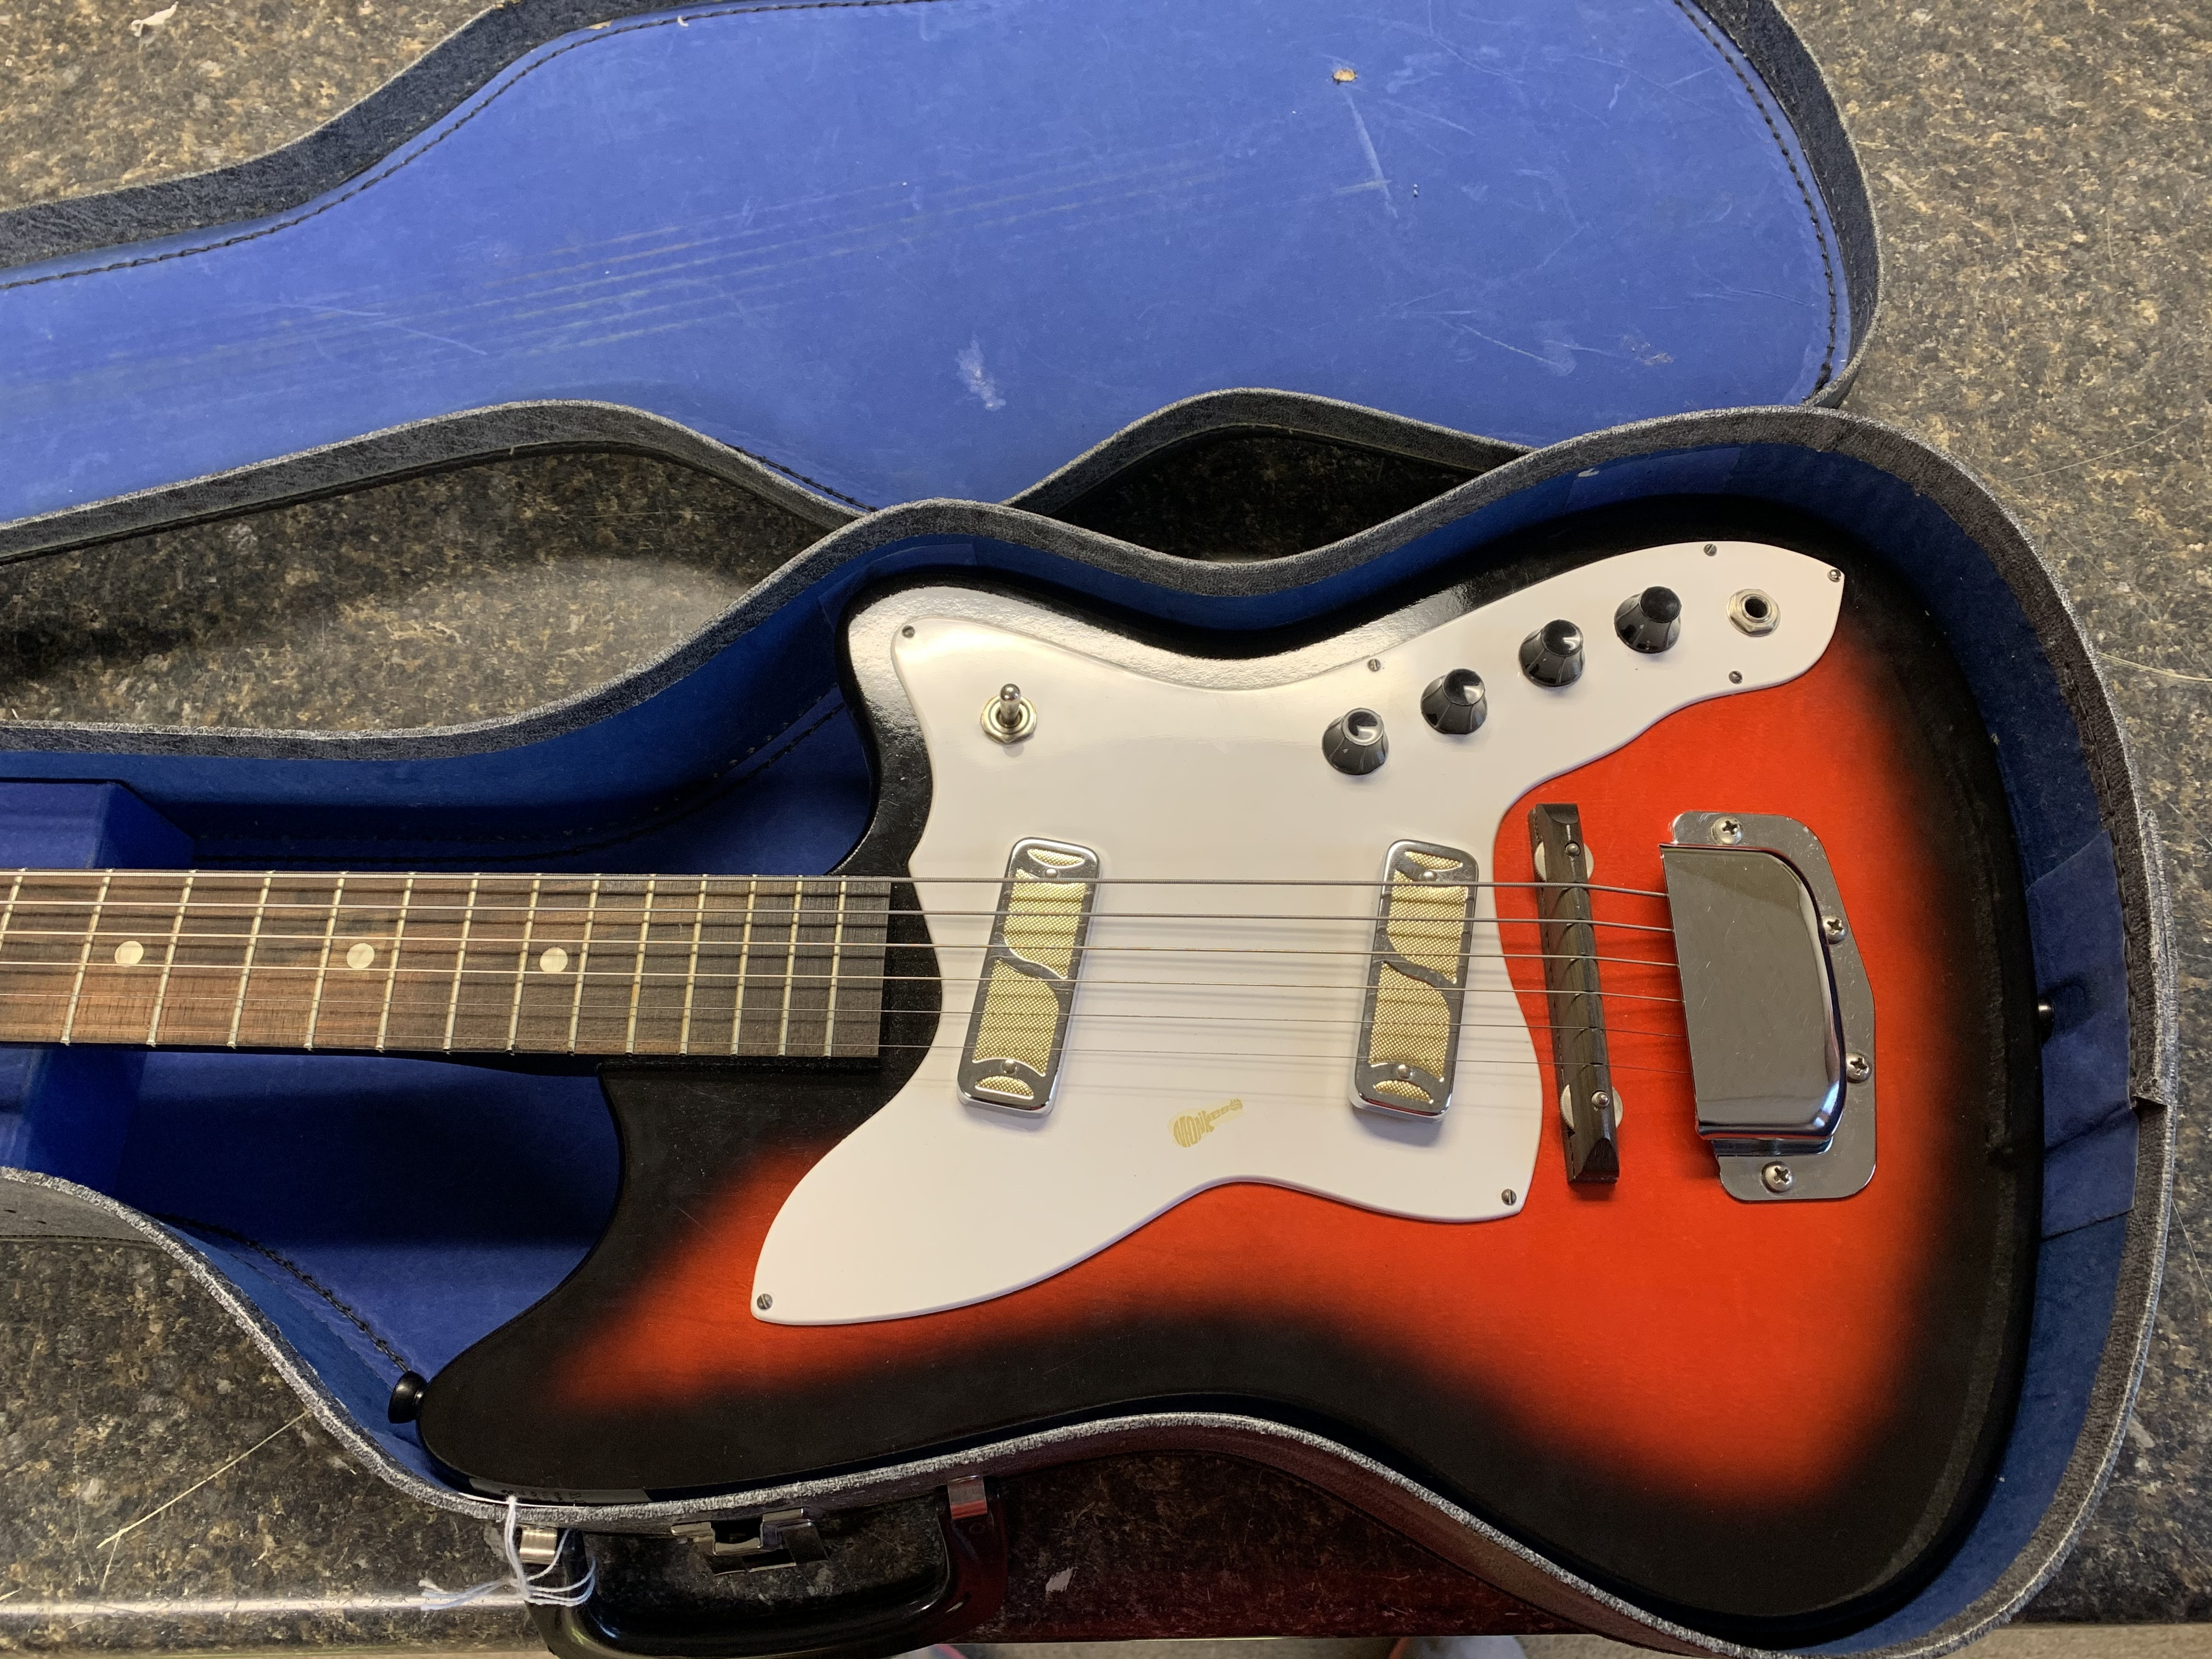 HOLIDAY HARMONY BOBKAT VINTAGE 1960's ELECTRIC GUITAR IN CHIPBOARD CASE